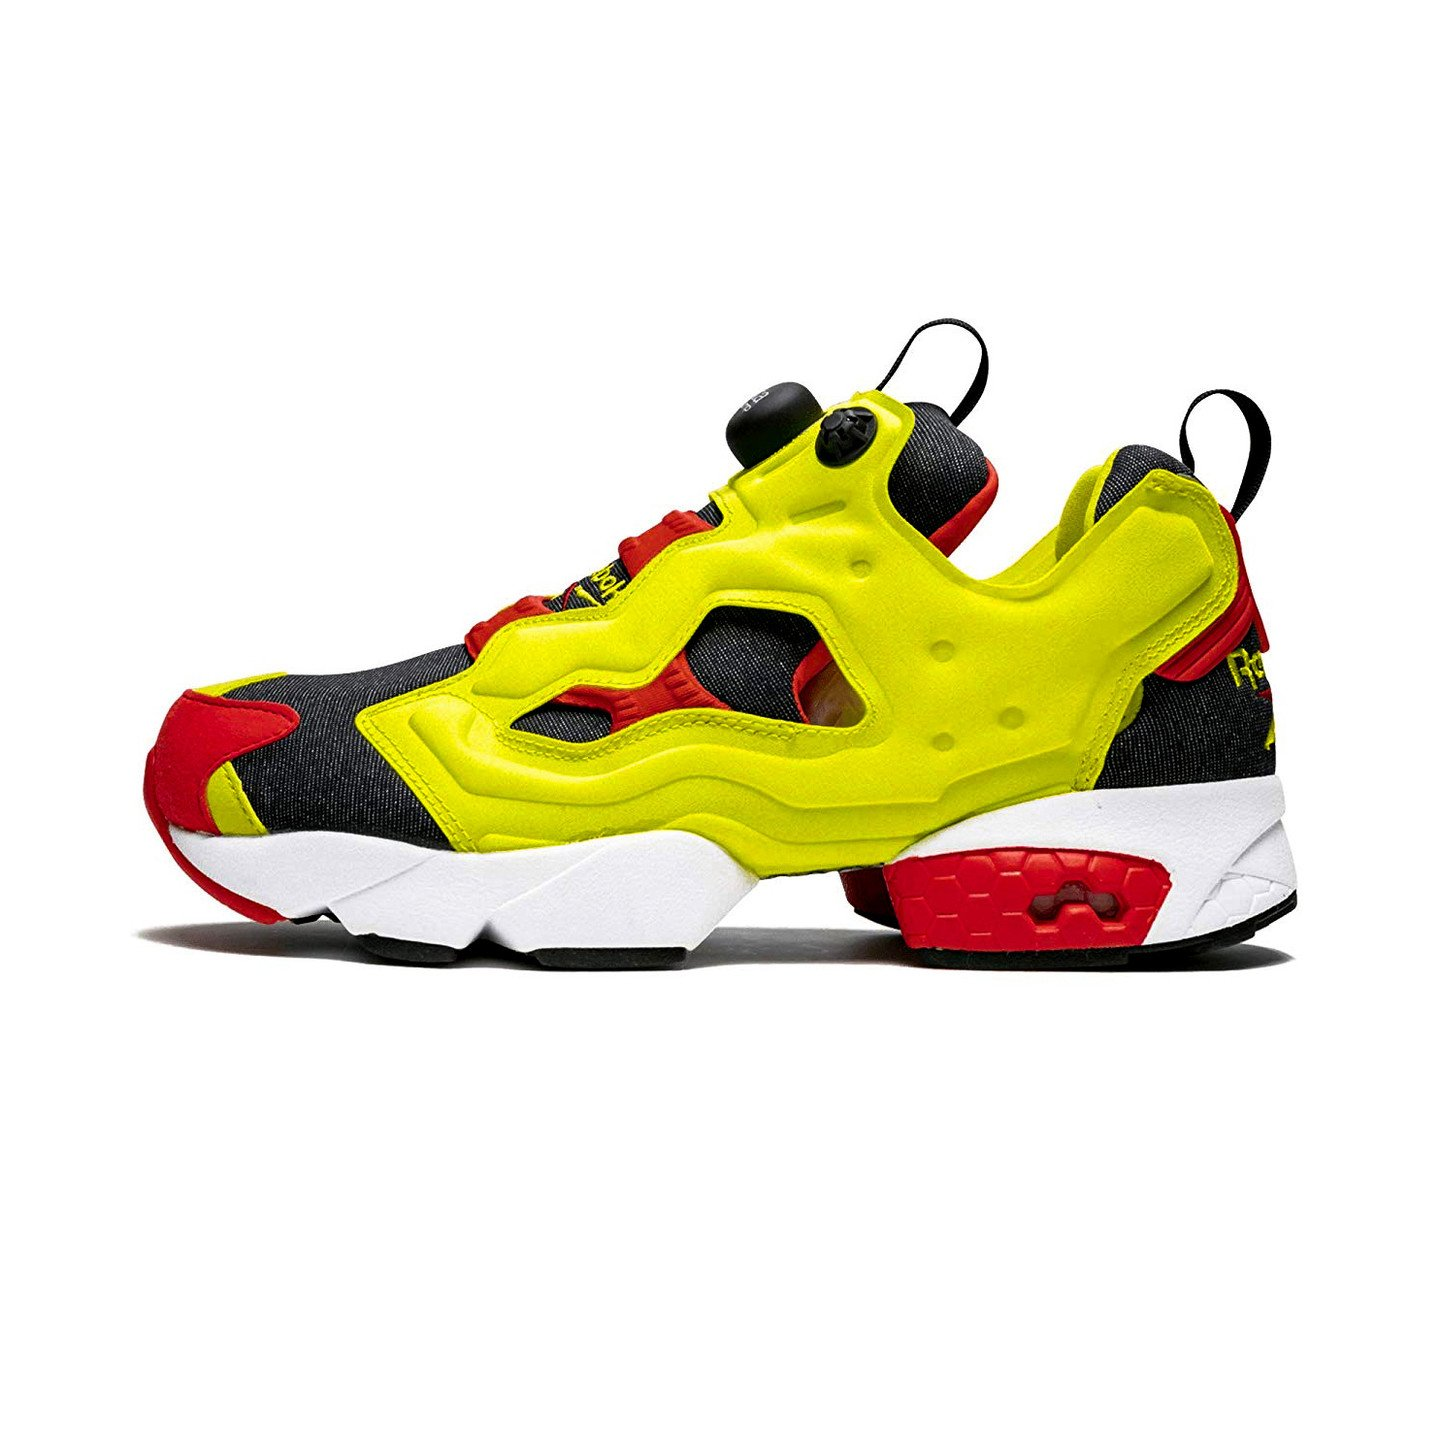 Reebok Instapump Fury OG 'Citron' Citron Yellow / Comet Red / Black V47514